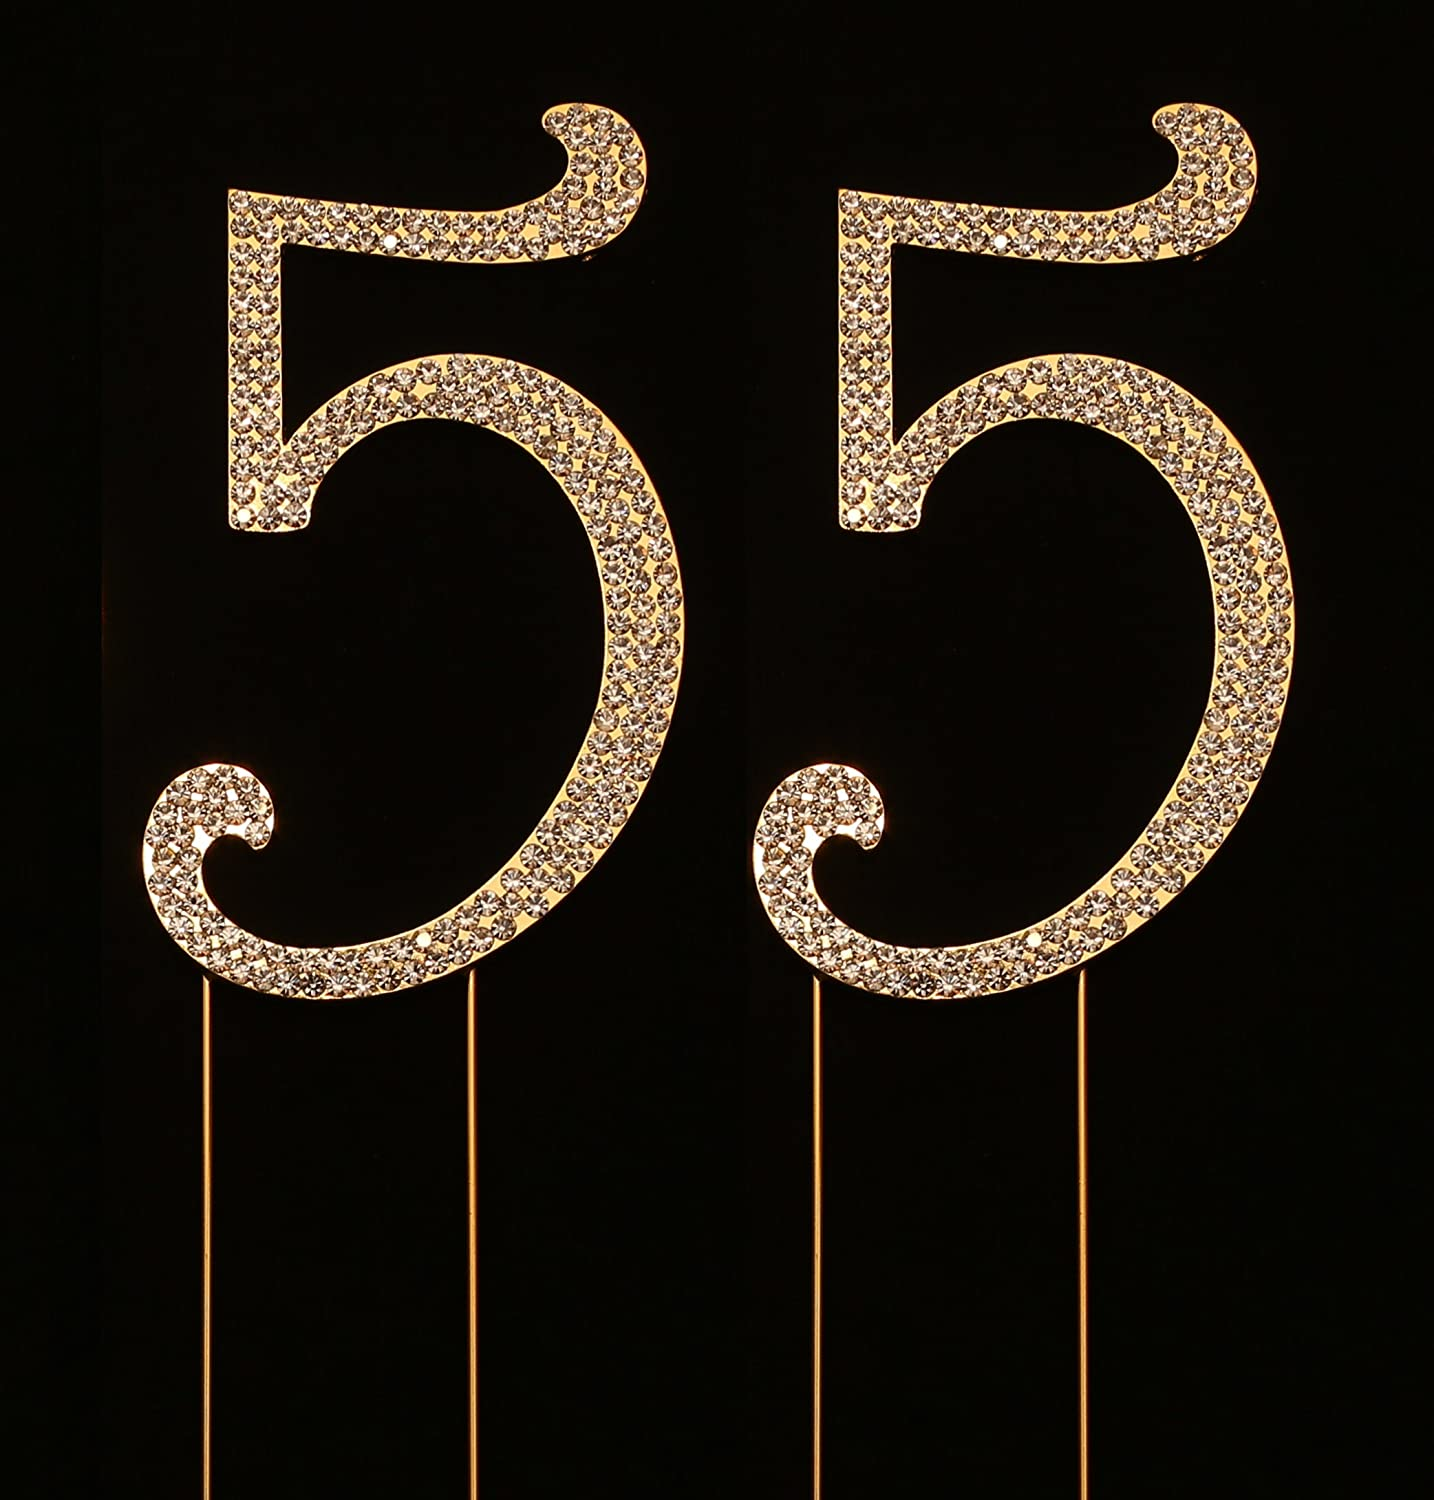 Amazon Number 55 For 55th Birthday Cake Topper Anniversary Party Decorations Joint Gold 45 Inches Tall Kitchen